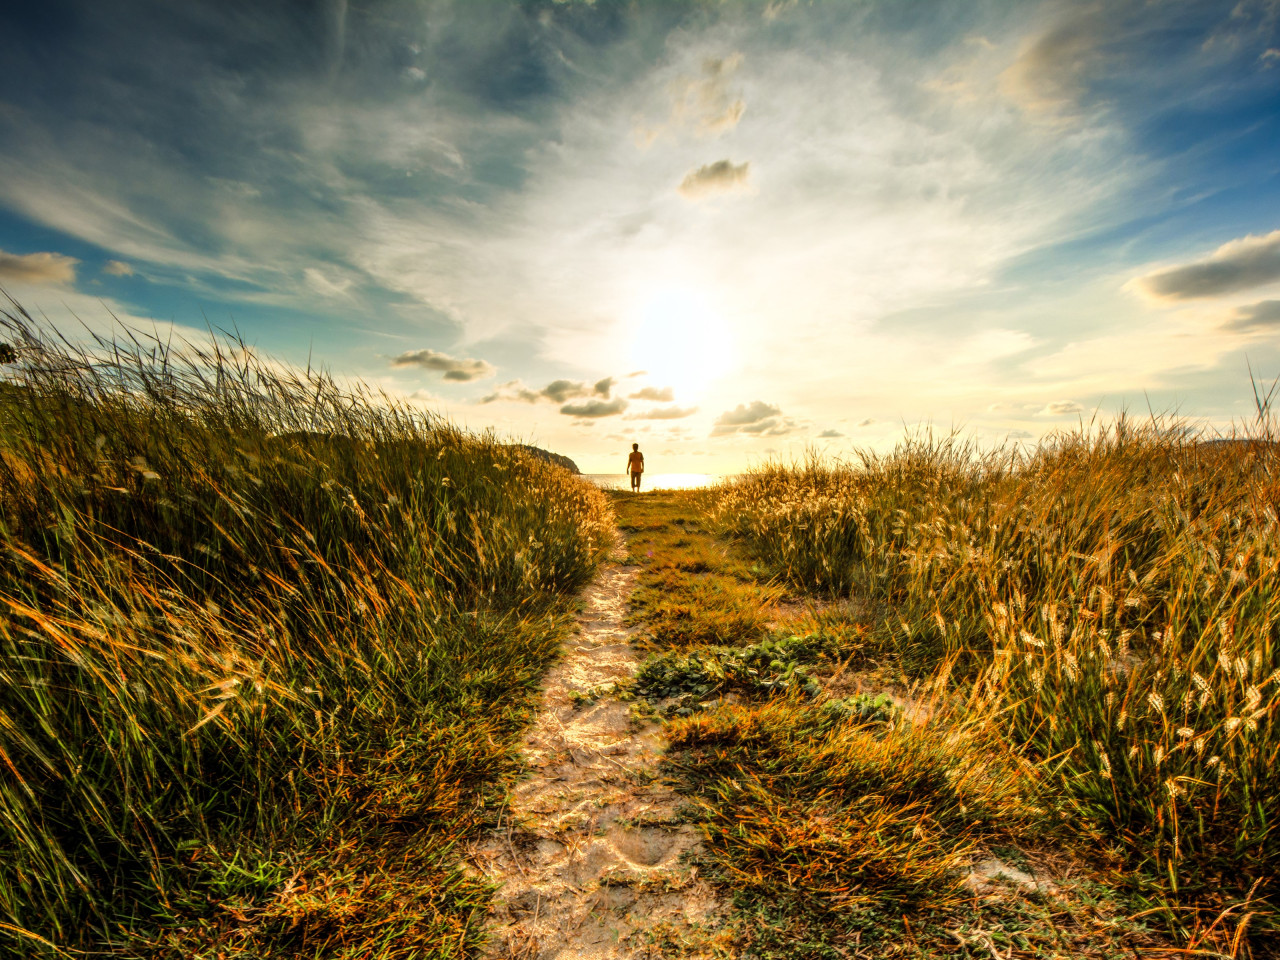 Walk to sunset on the nature path wallpaper 1280x960